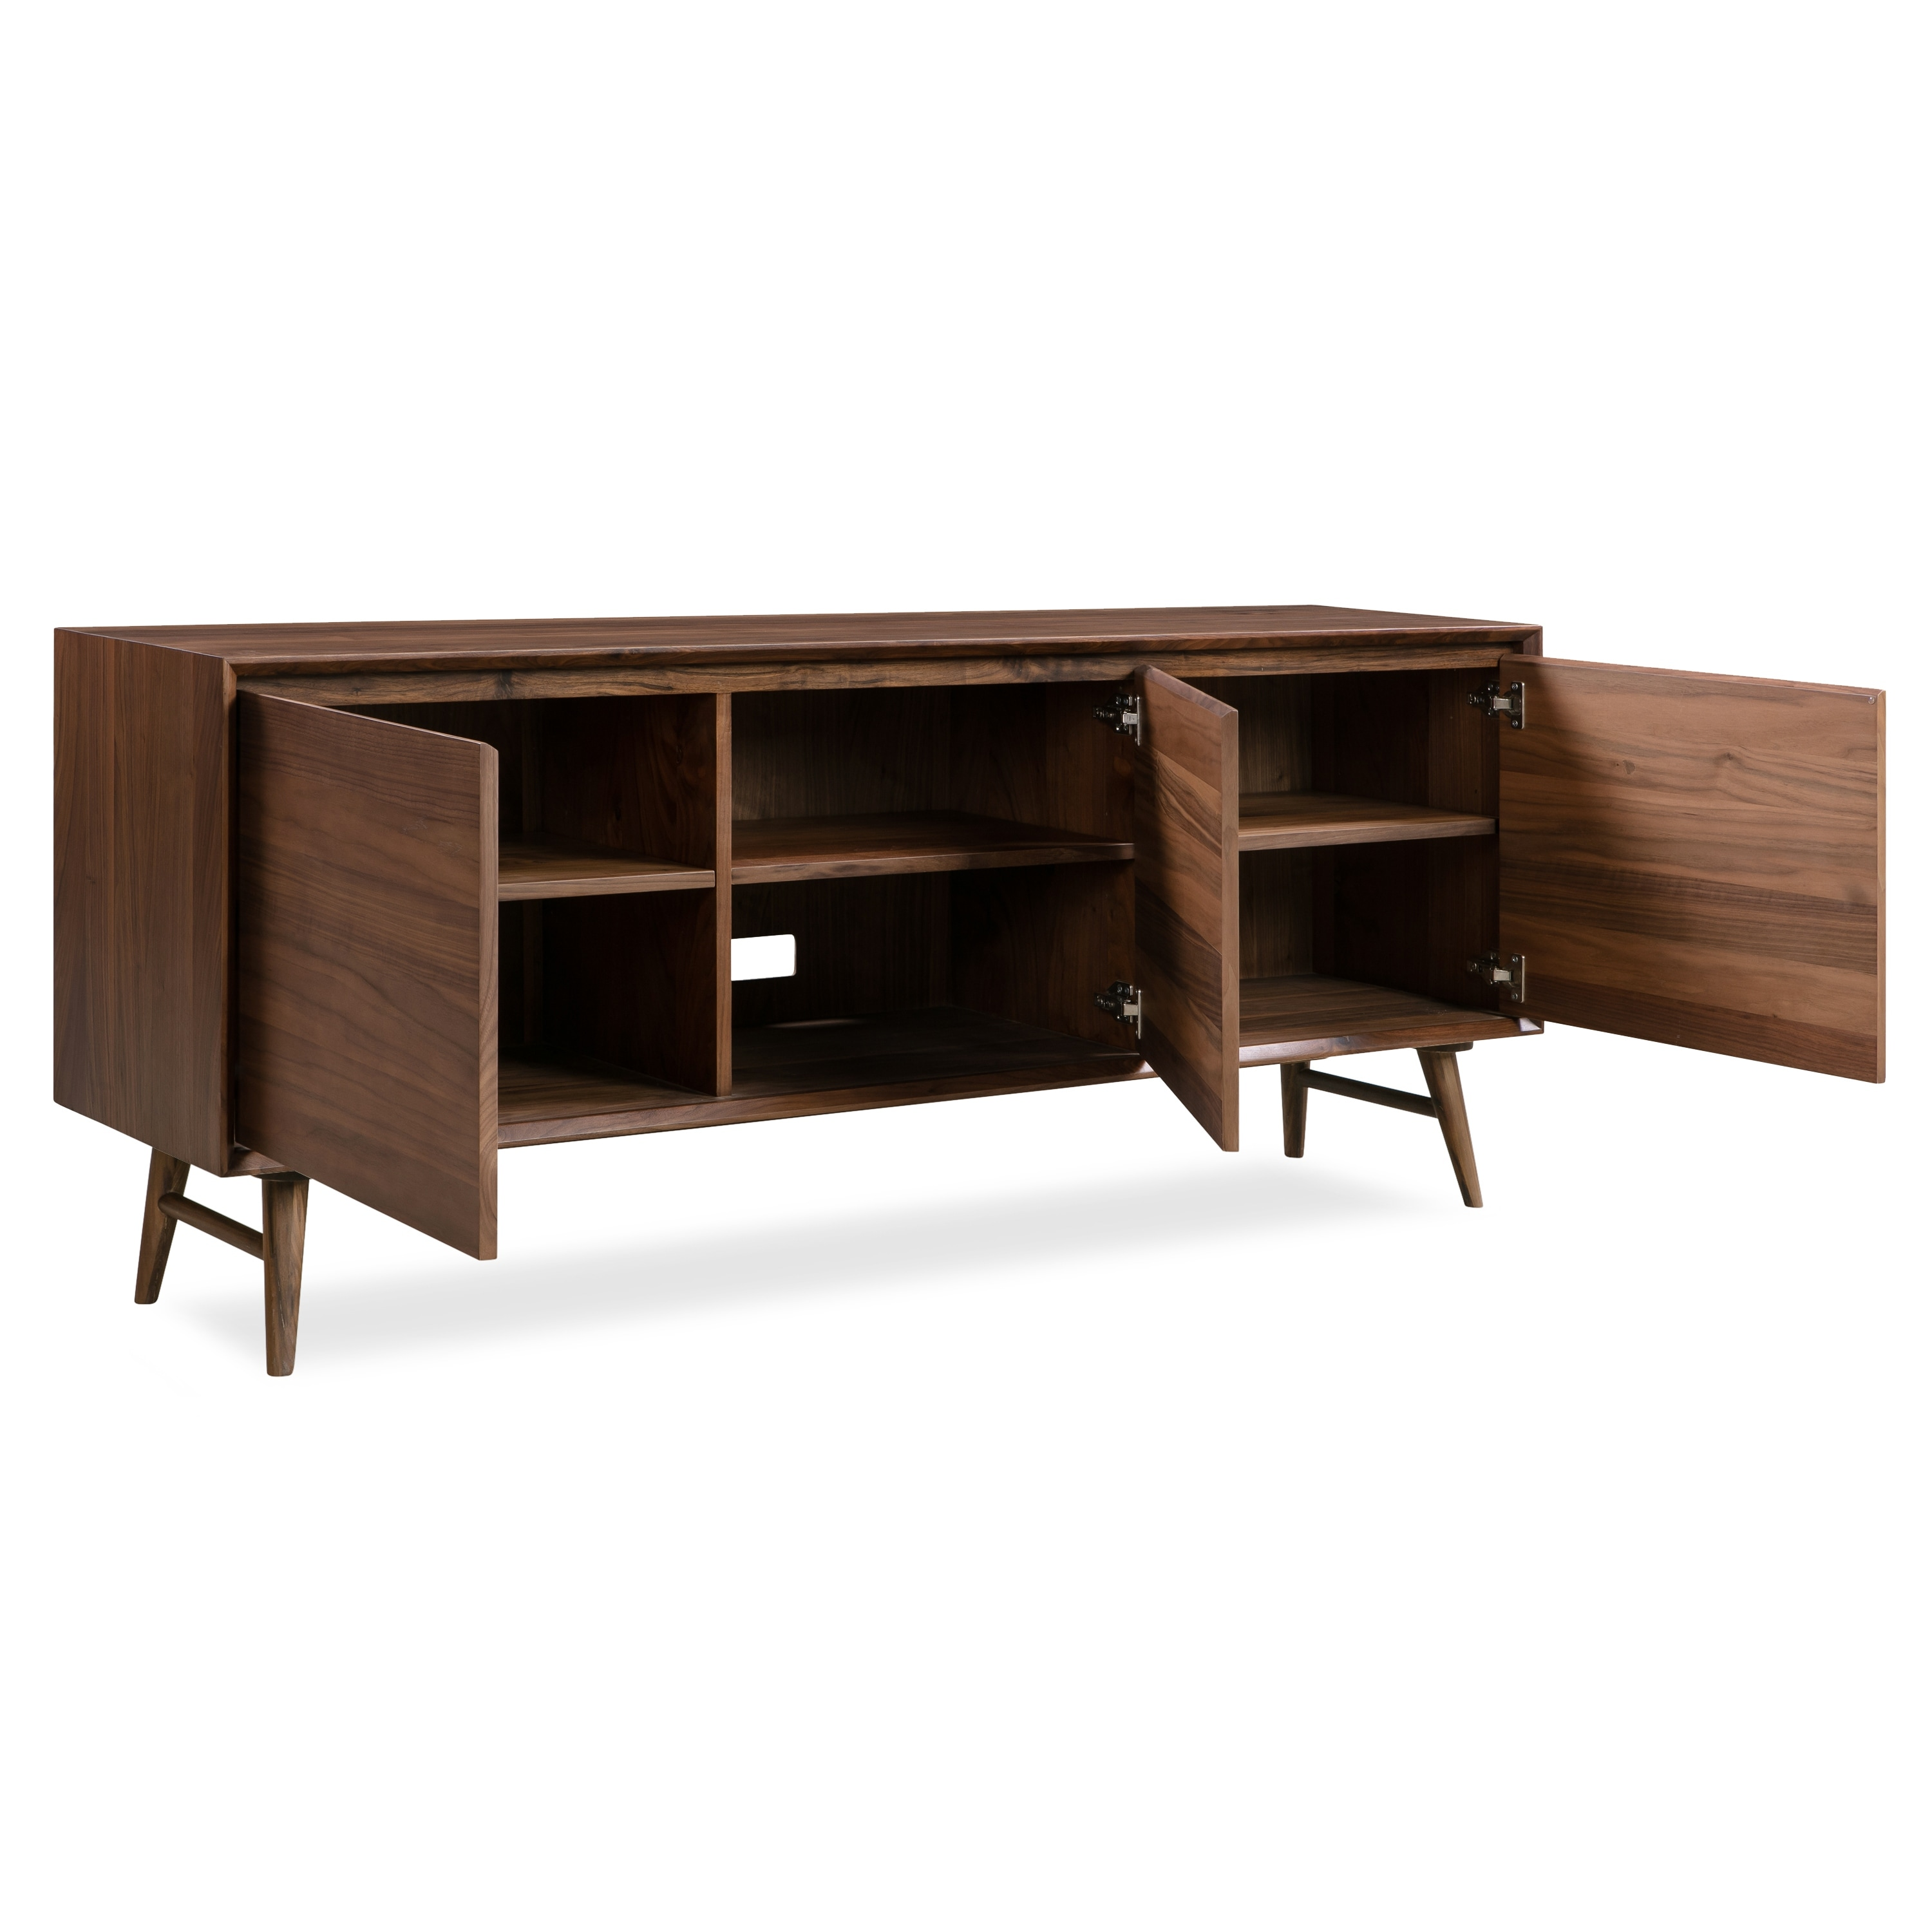 Poly And Bark Lena 71 Sideboard On Sale Overstock 30065678